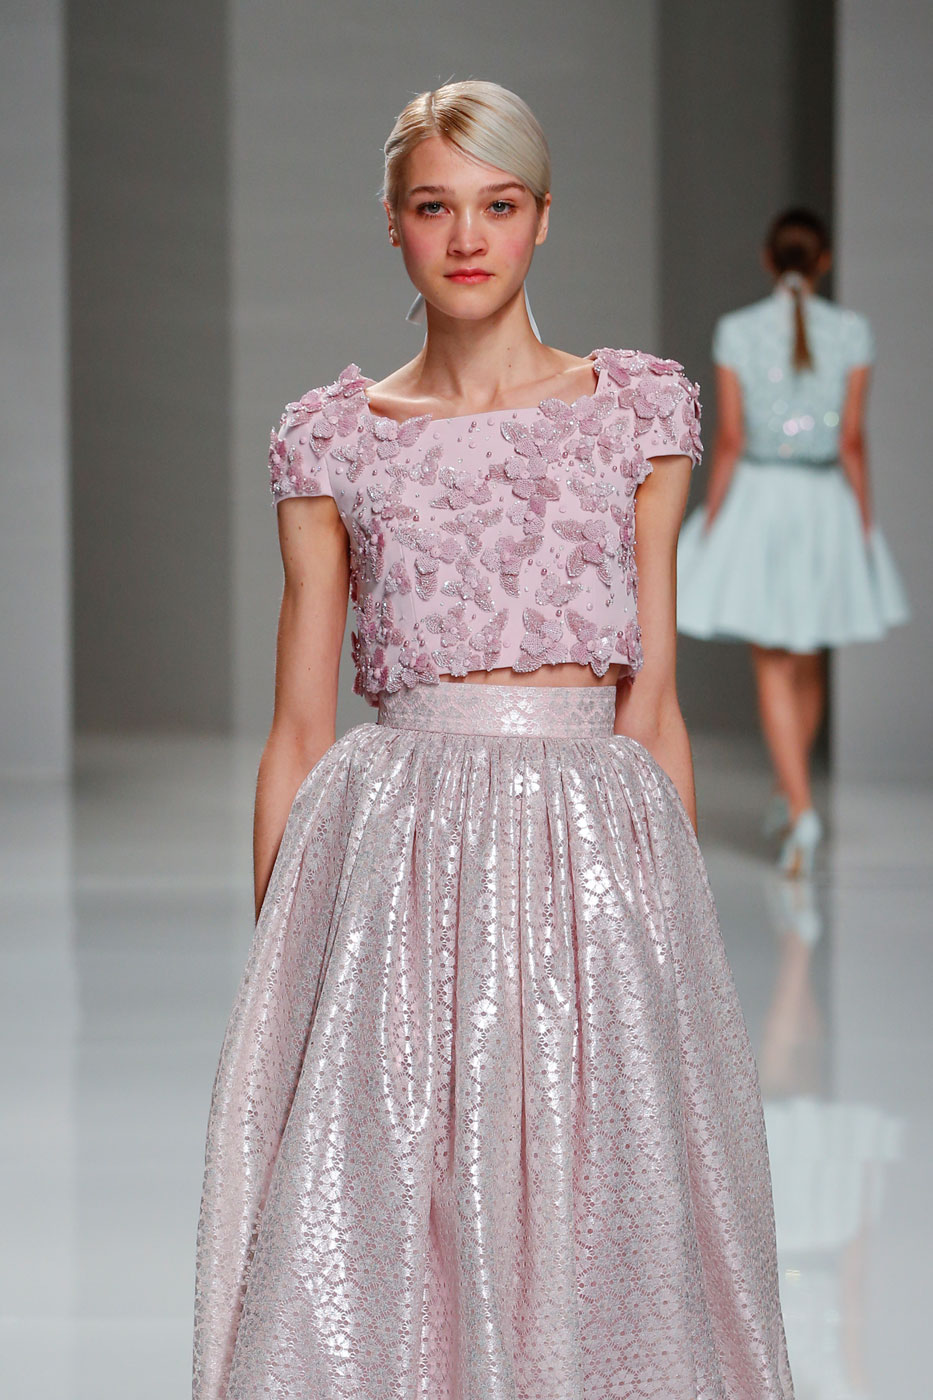 Georges-Hobeika-fashion-runway-show-haute-couture-paris-spring-2015-the-impression-14